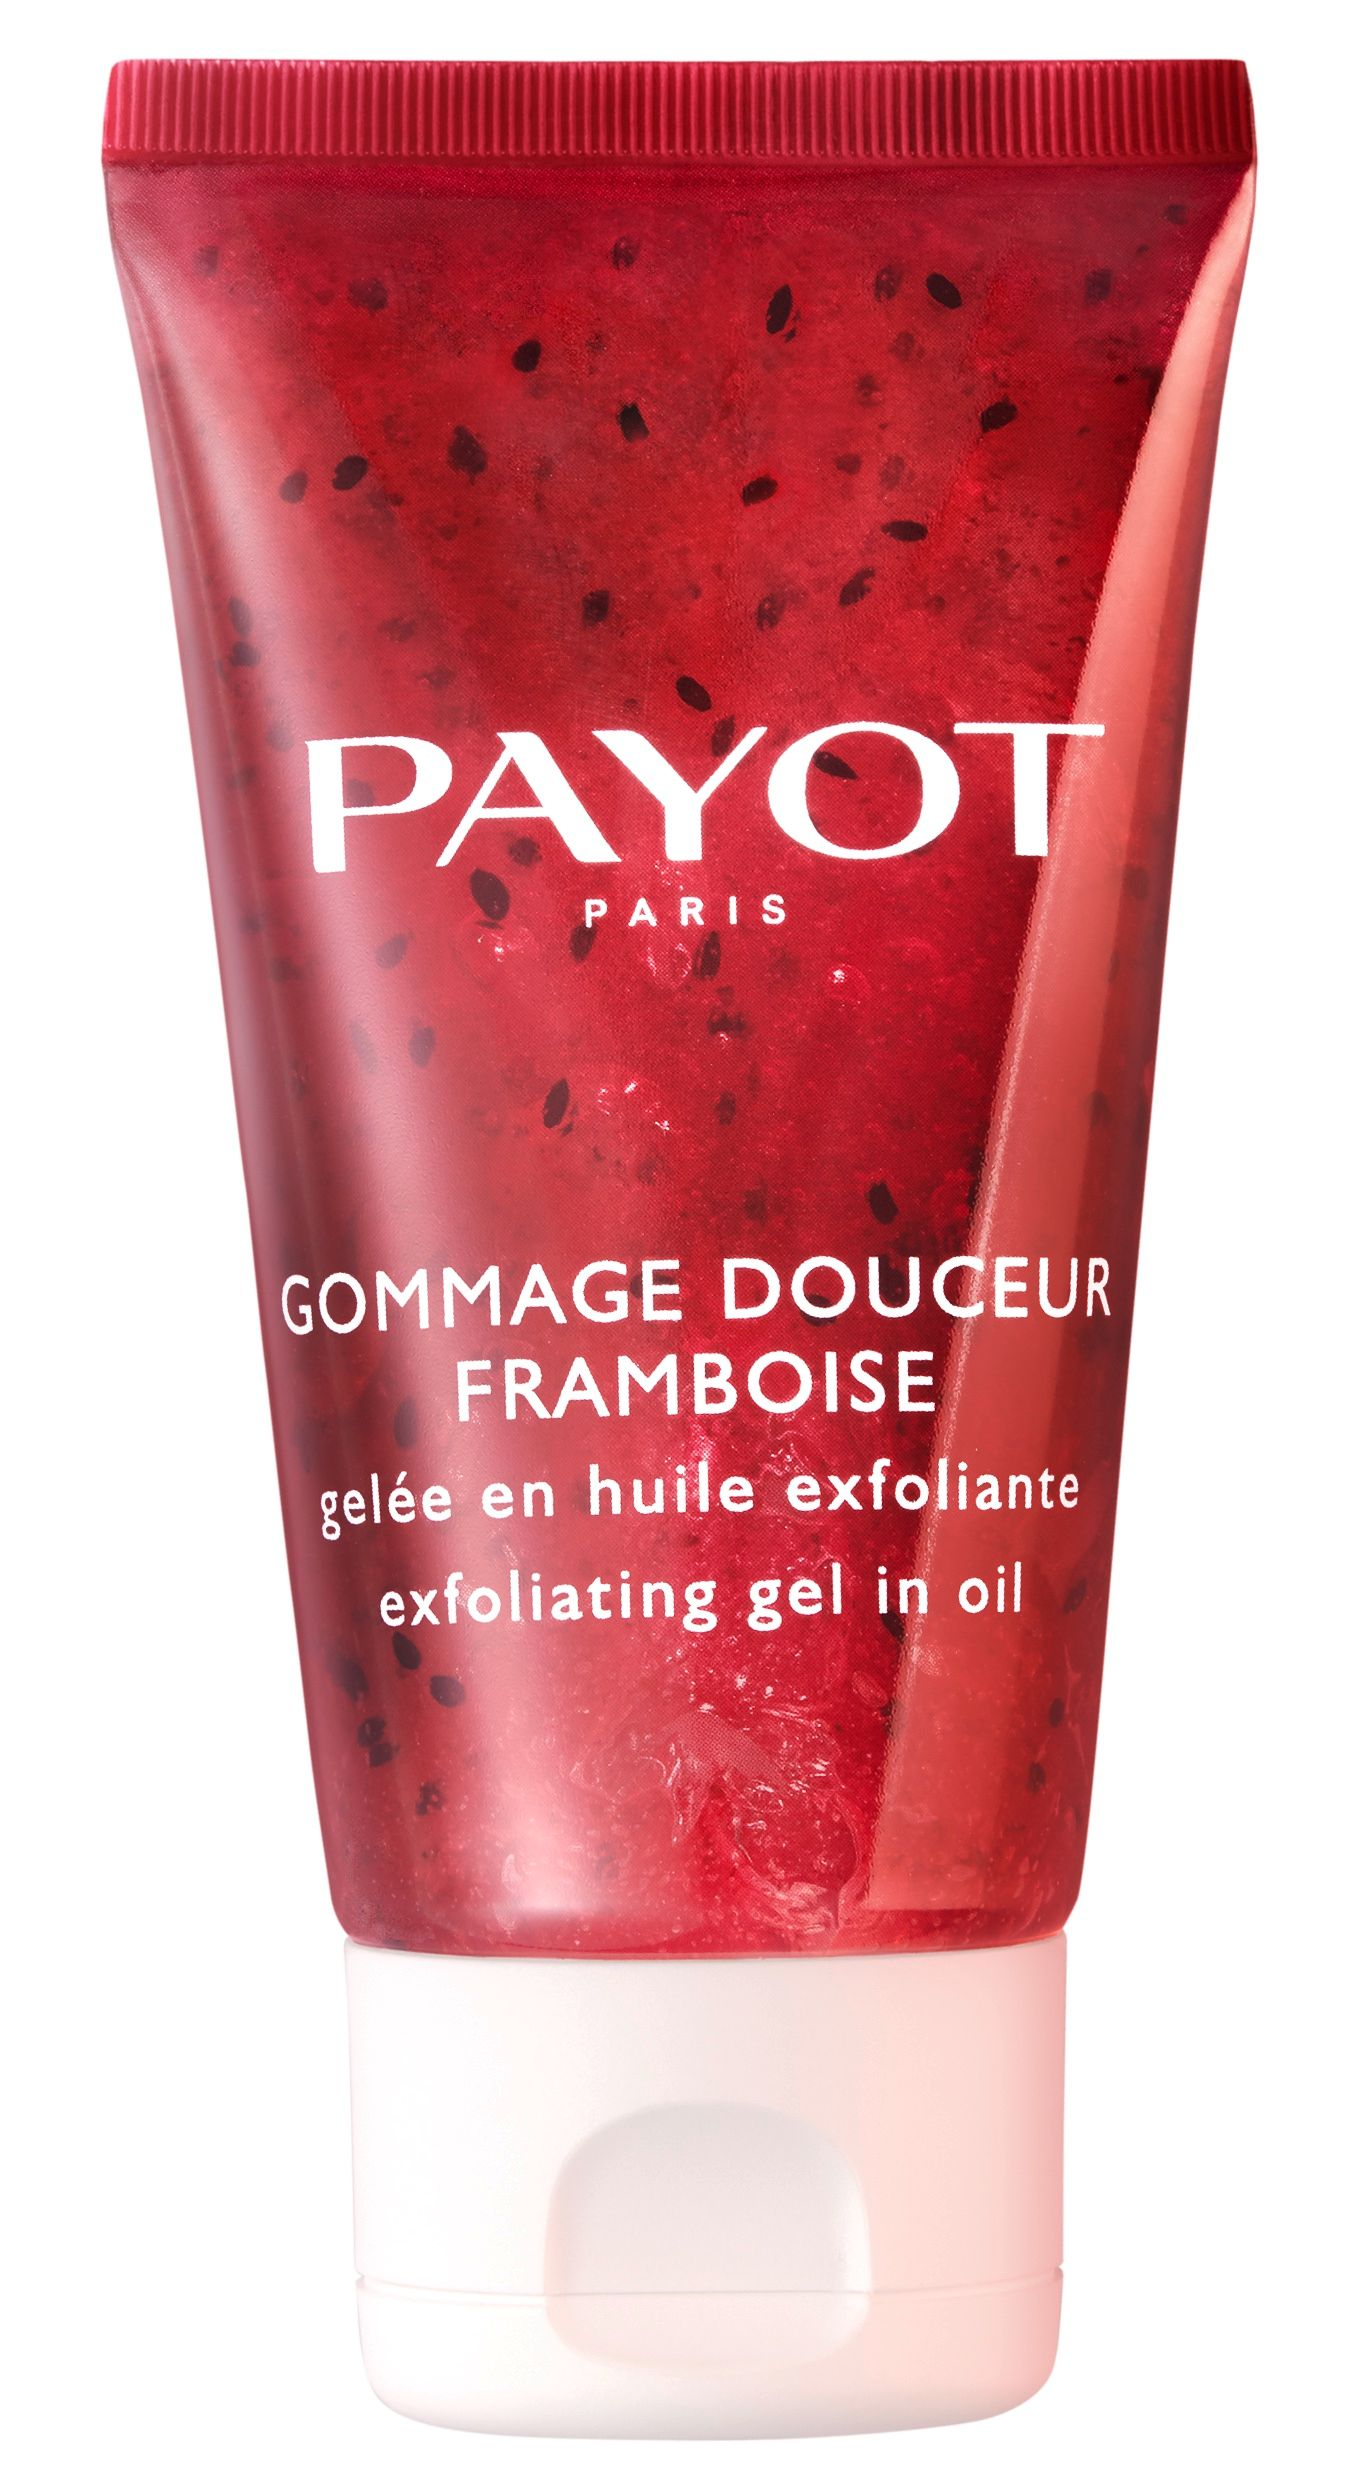 Gommage_douceur_framboise